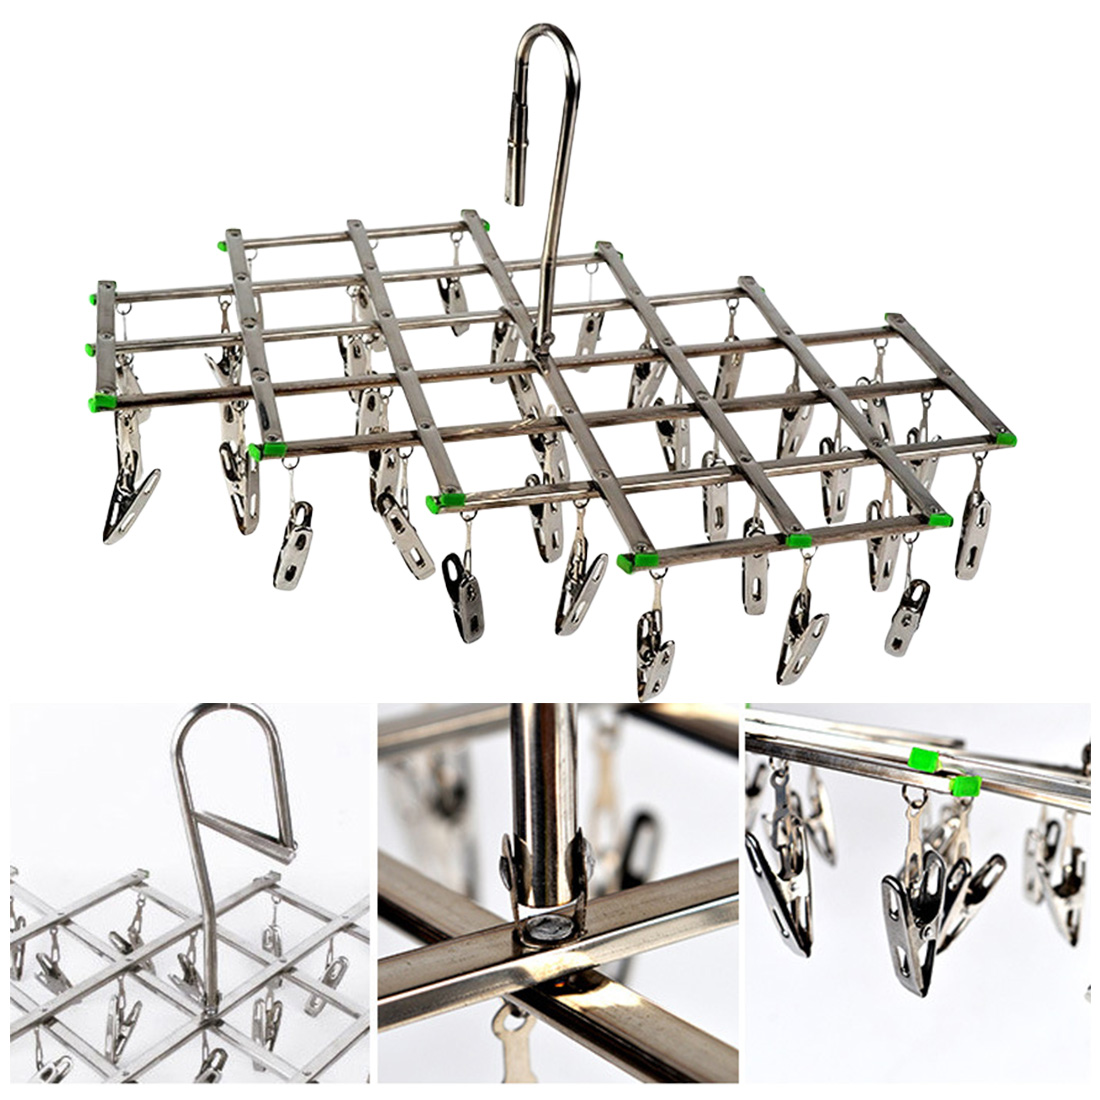 Best Sale Windproof Stainless Steel Swivel Clothes Hanger Organizer 35 Clips Clothes Underwear Bra Socks Gloves Drying Hook Rack